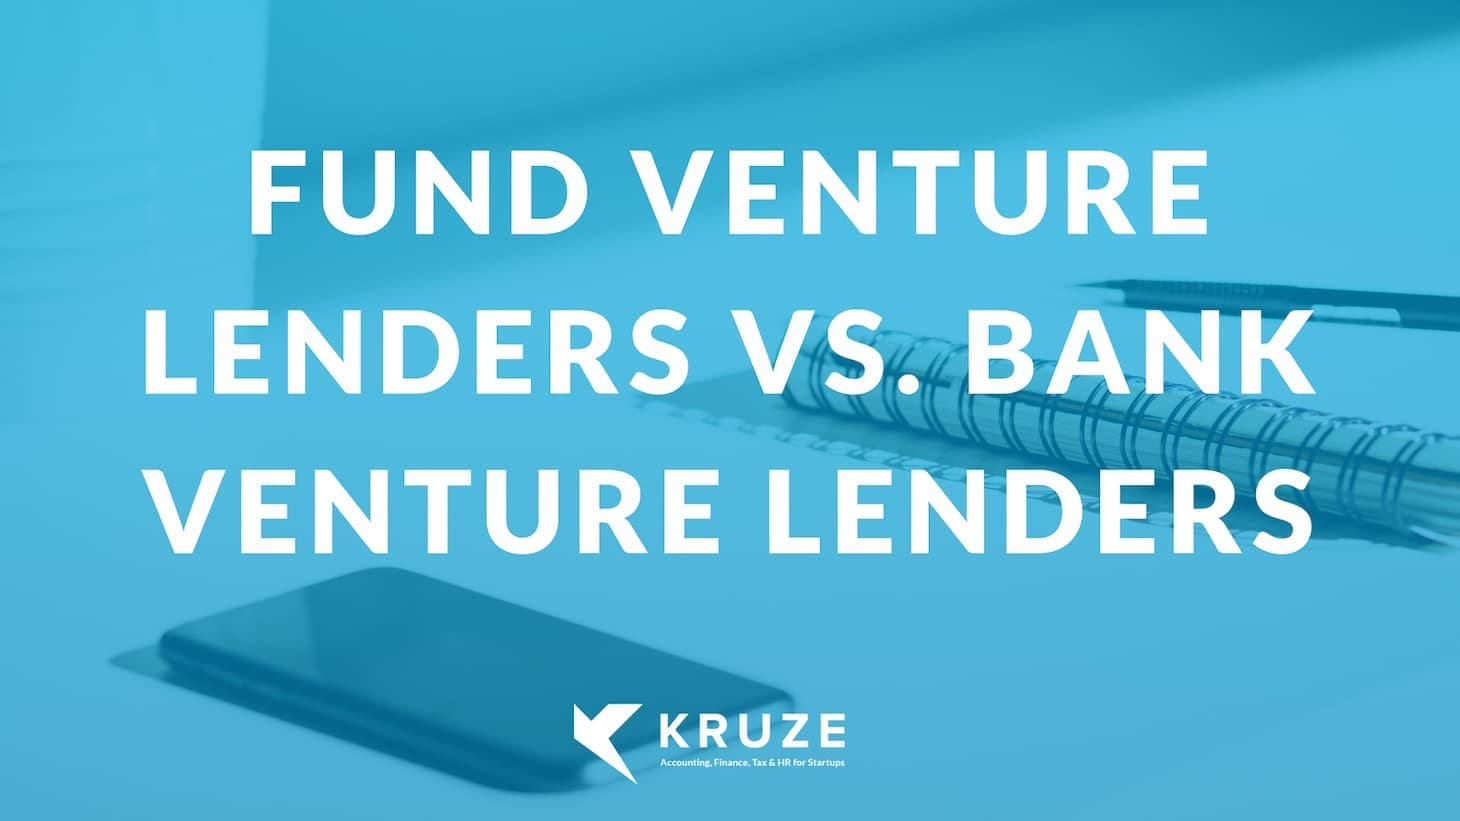 Fund Venture Lenders vs. Bank Venture Lenders